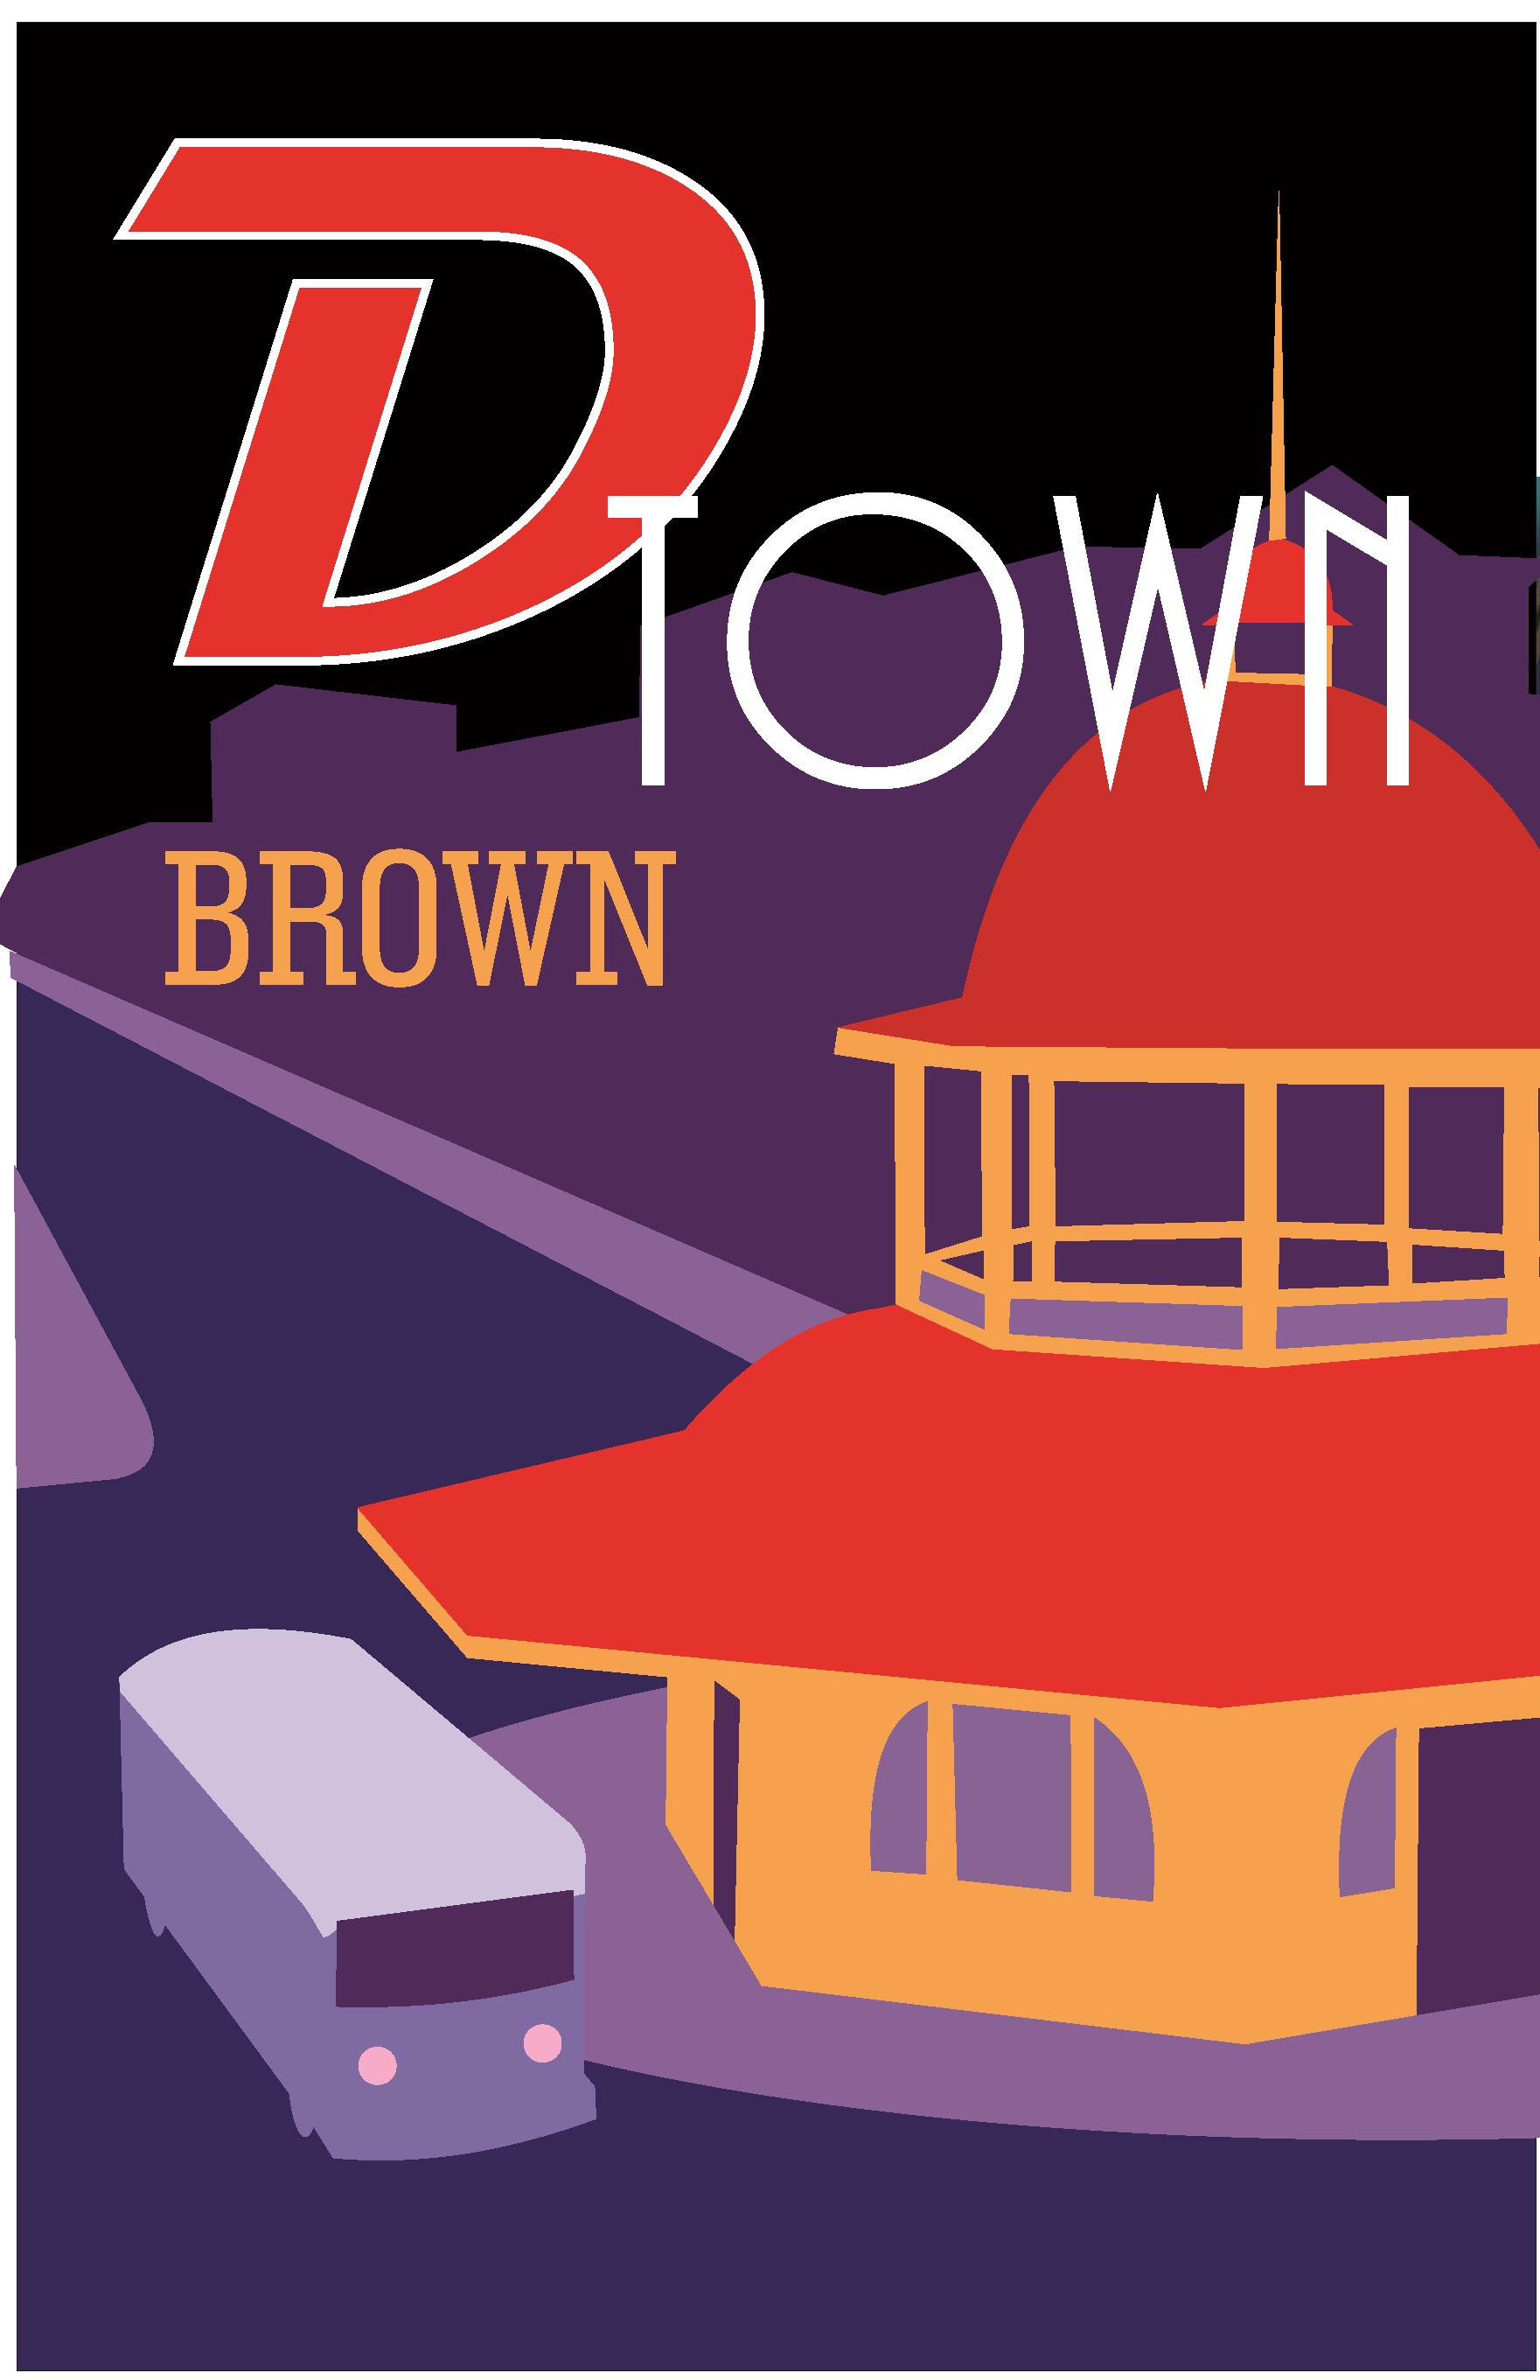 One of our flagship beers, D-Town Brown is a very approachable, easy drinking brown ale. Afraid of dark beers? Fear no longer!